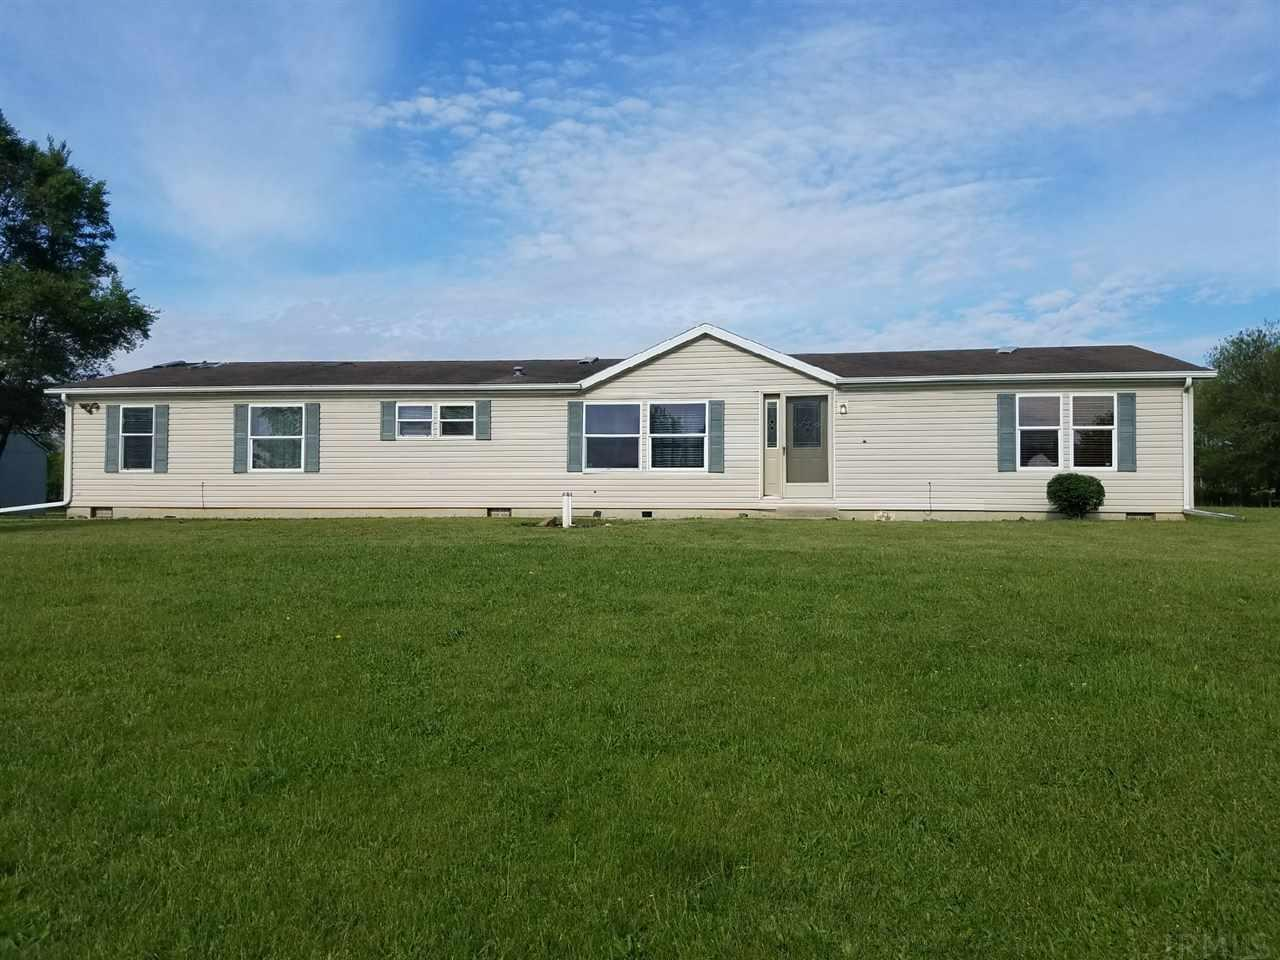 9356 N 700 West, Roann, IN 46974